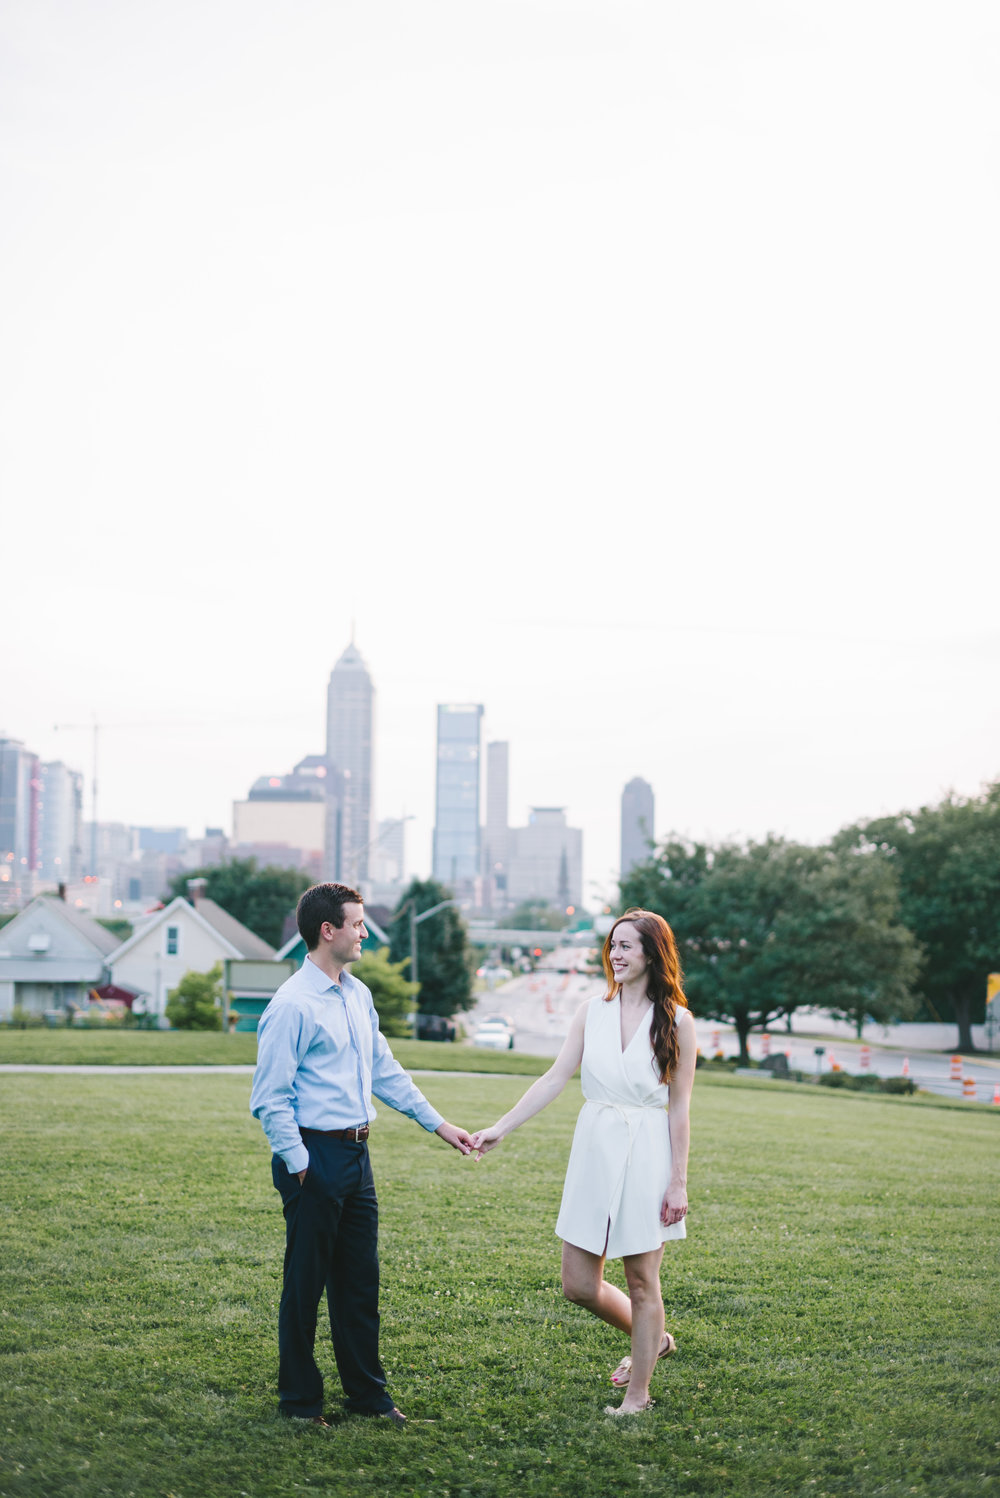 Lockerbie Square Engagement Session Indianapolis Wedding Photographer Erika AileenLockerbie Square Engagement Session Indianapolis Wedding Photographer Erika Aileen